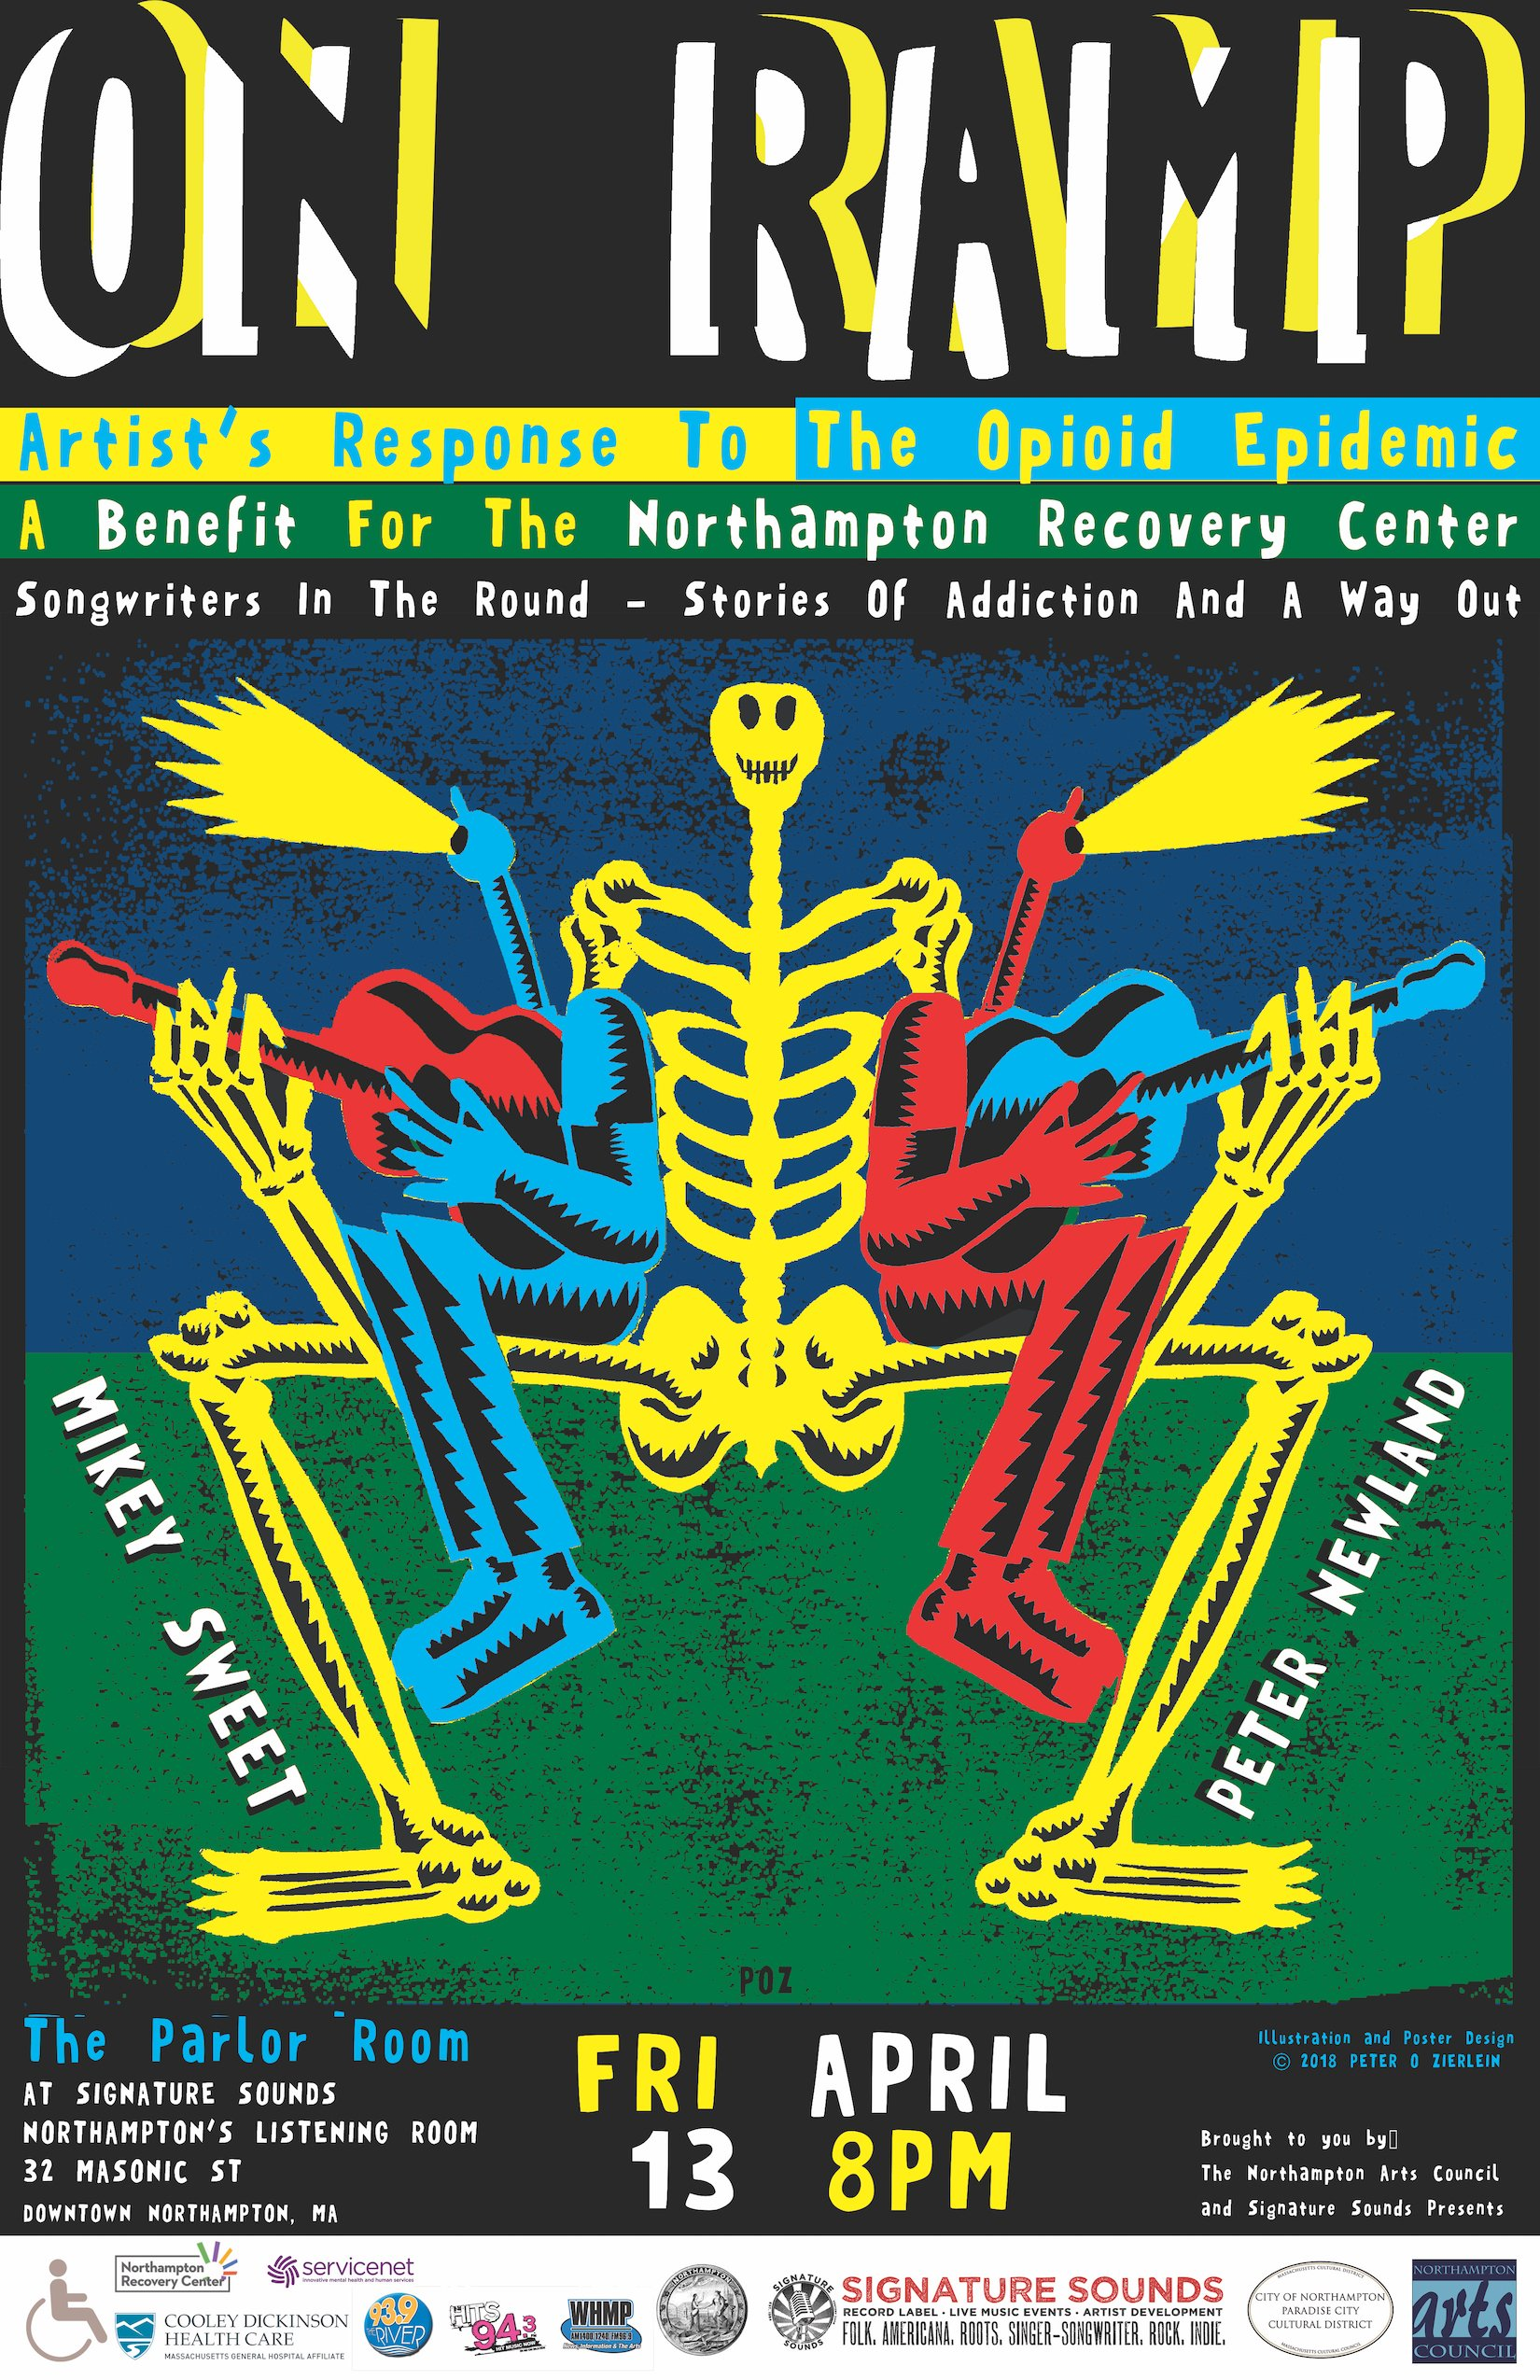 On Ramp: Songwriters in the Round - A Benefit for the Northampton Recovery Center